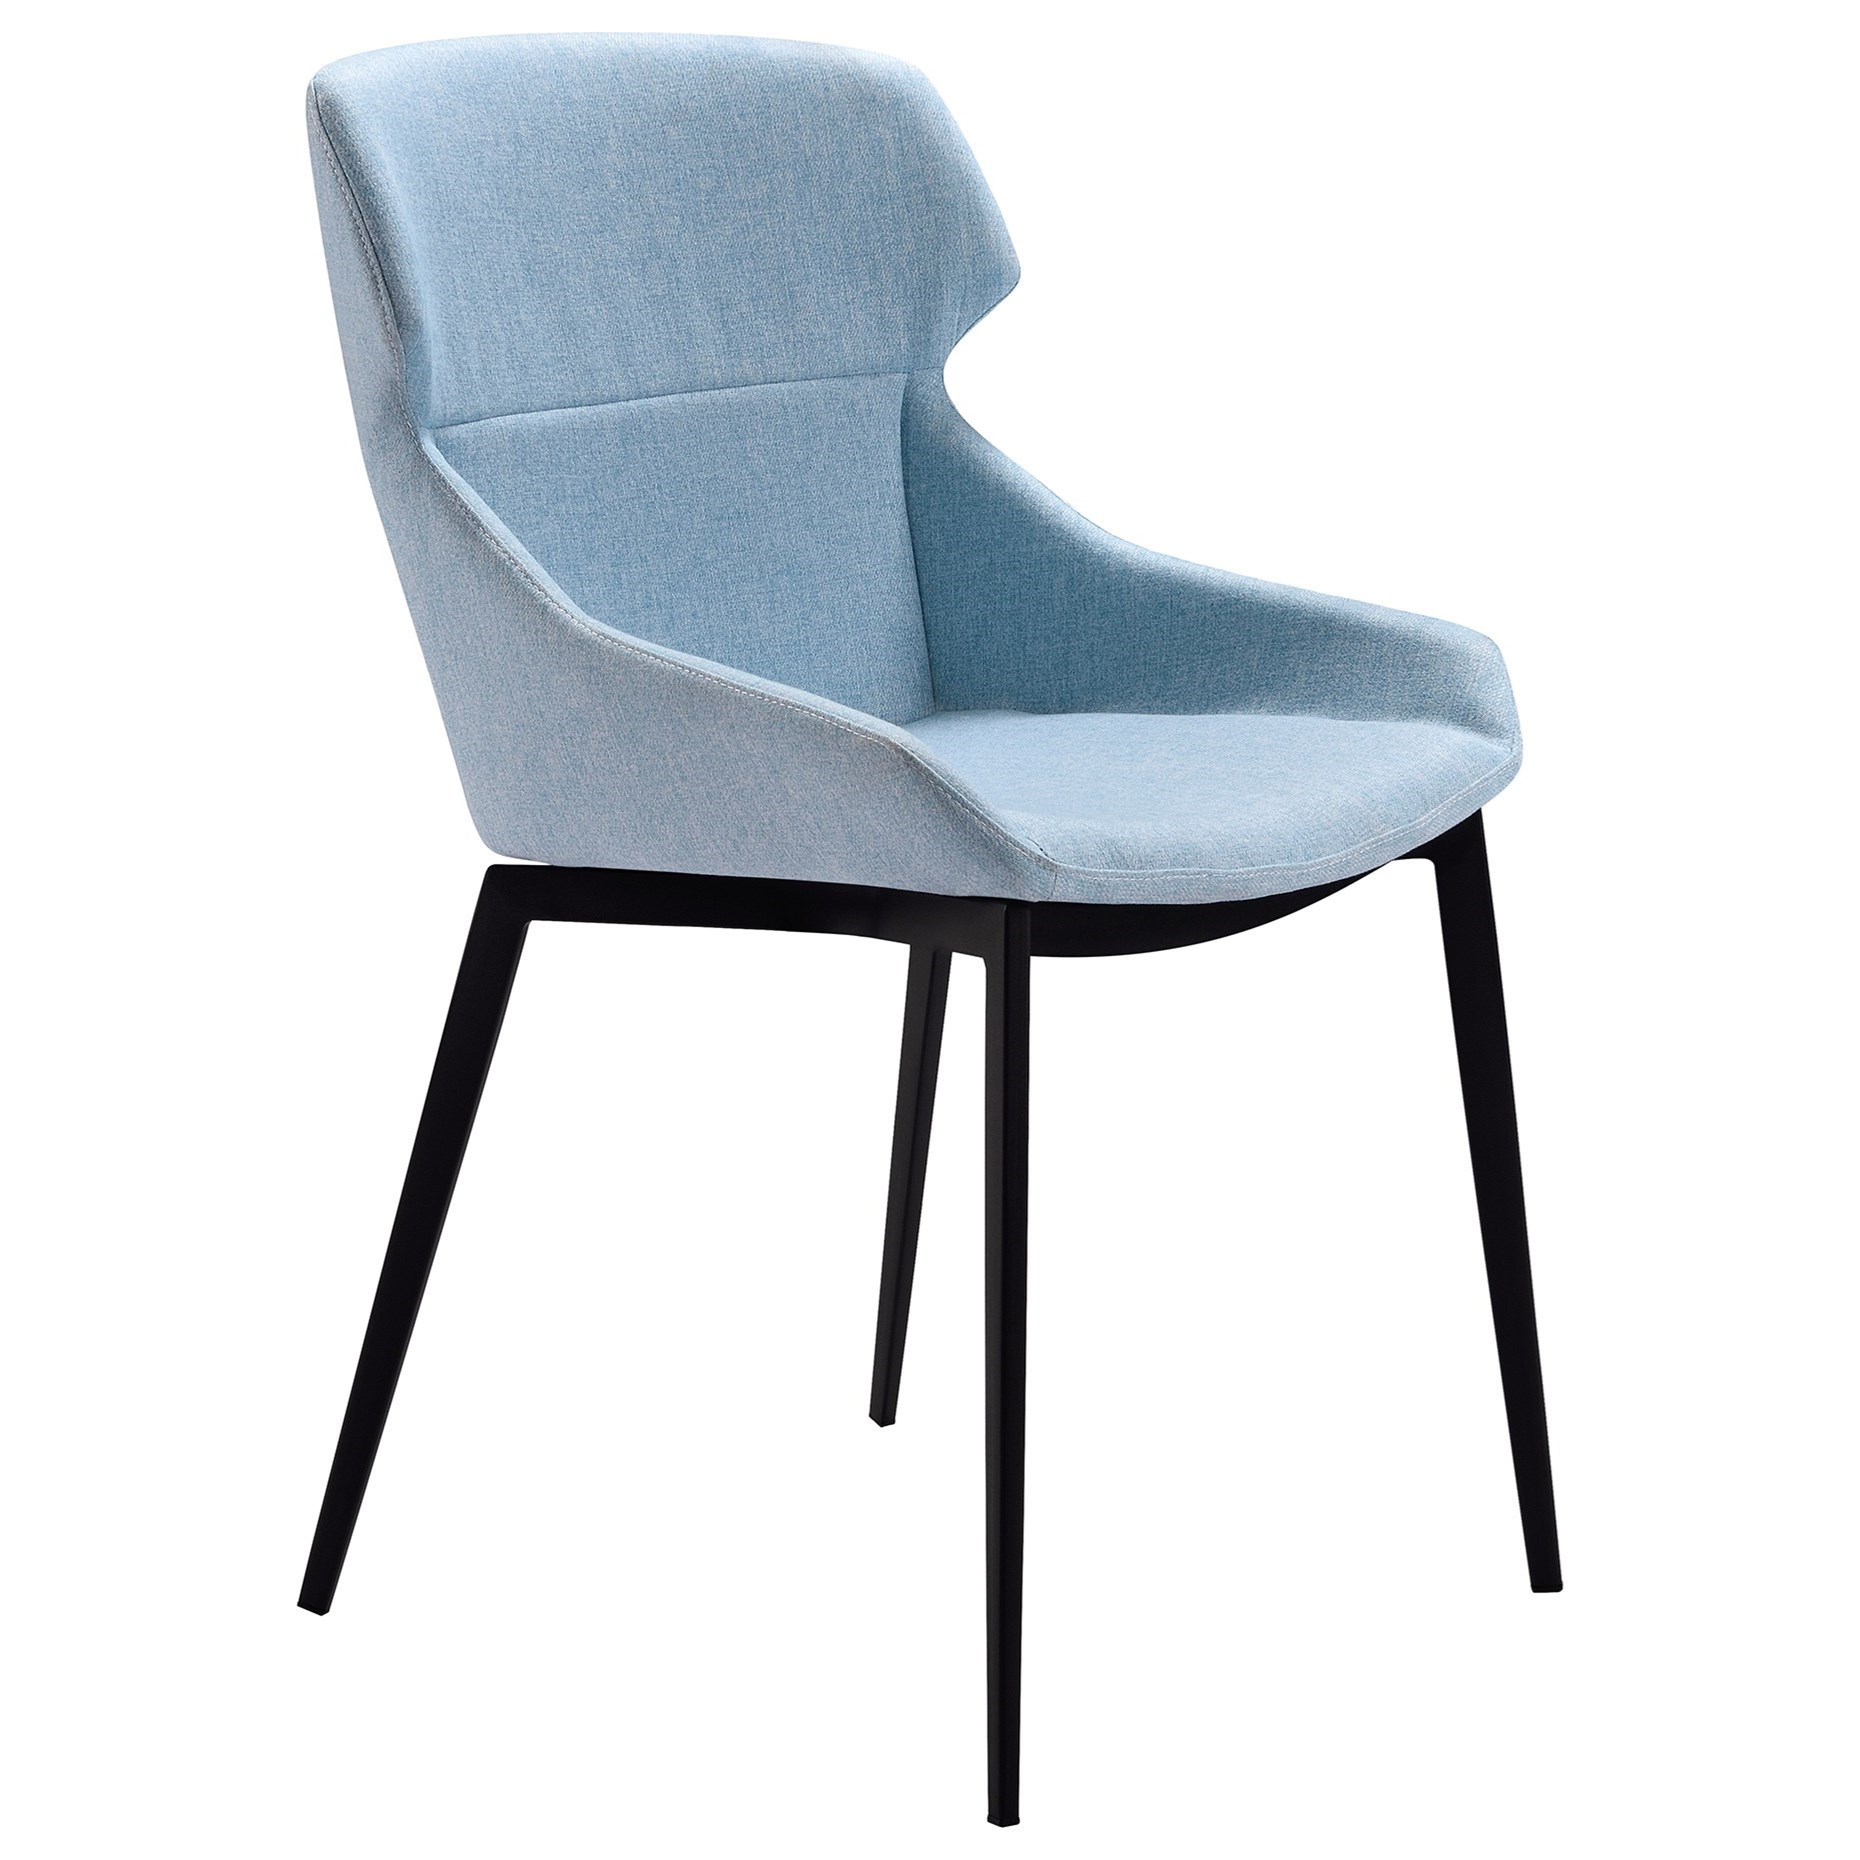 Kenna Modern Dining Chairs In Matte Black Finish With Blue Fabric Set Of 2 Sadler S Home Furnishings Dining Side Chairs